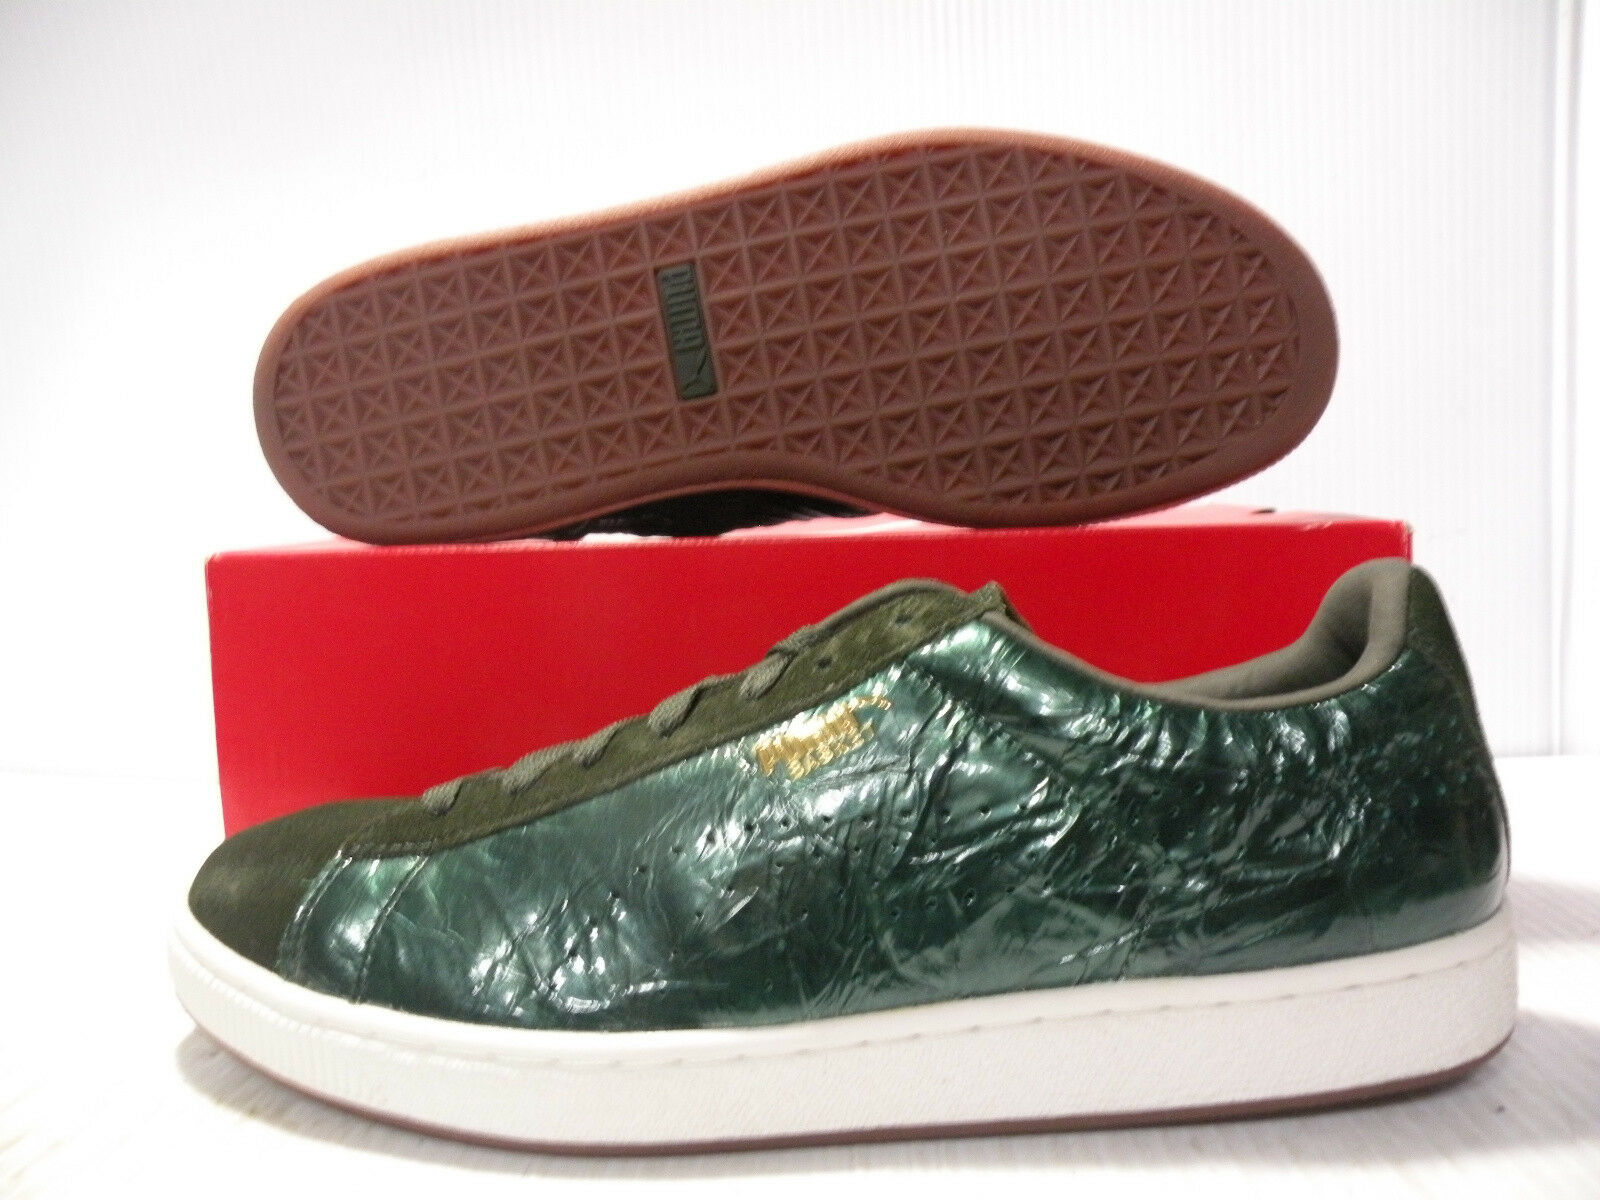 PUMA THE BASKET RIPPLE LOW SNEAKERS MEN SHOES GREEN 182105-01 SIZE 12 NEW